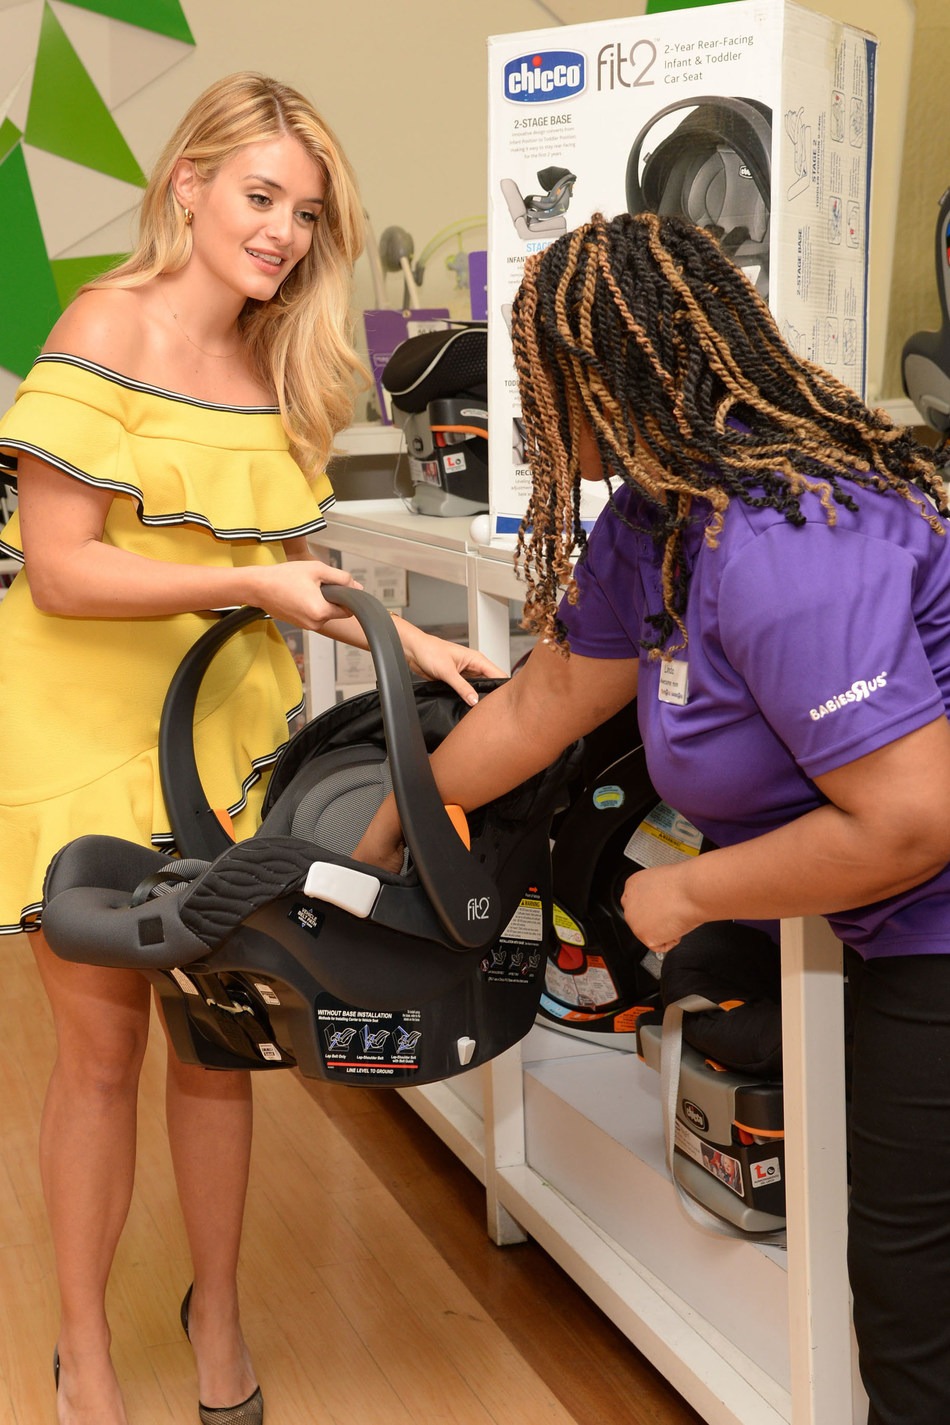 "Daphne Oz, Chicco spokesperson and mom of two, visited the Babies""R""Us Union Square store on April 24 to check out the new Chicco Fit2™ Infant & Toddler Car Seat. Oz is partnering with Chicco to launch TurnAfter2, a national movement designed to keep children rear-facing until at least age two. TurnAfter2 encourages parents to share photos of their kids rear-facing with #TurnAfter2 to inspire positive dialogue around car seat safety. Photo Credit: Michael Simon/Startraksphoto.com"